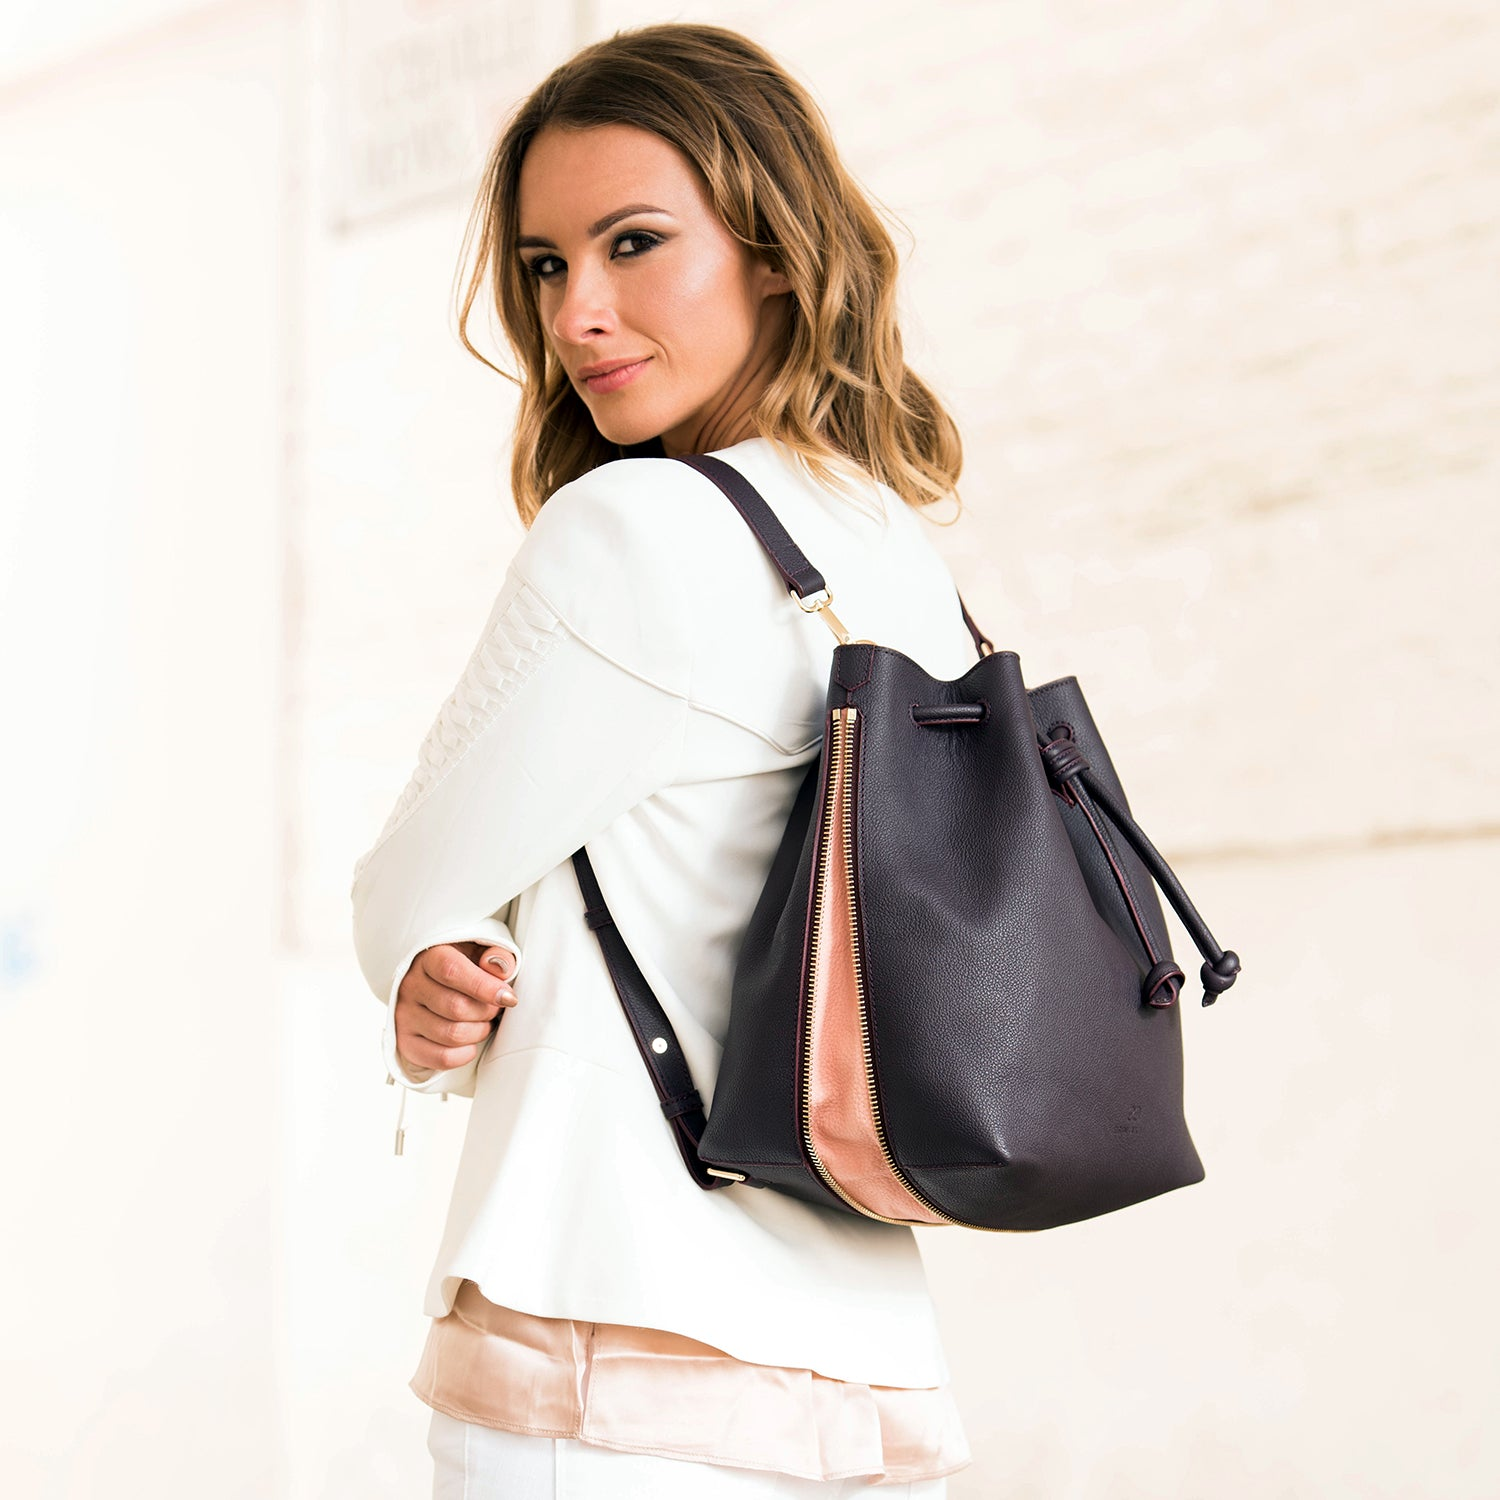 Model wearing a convertible laptop size leather black bucket bag as a backpack.